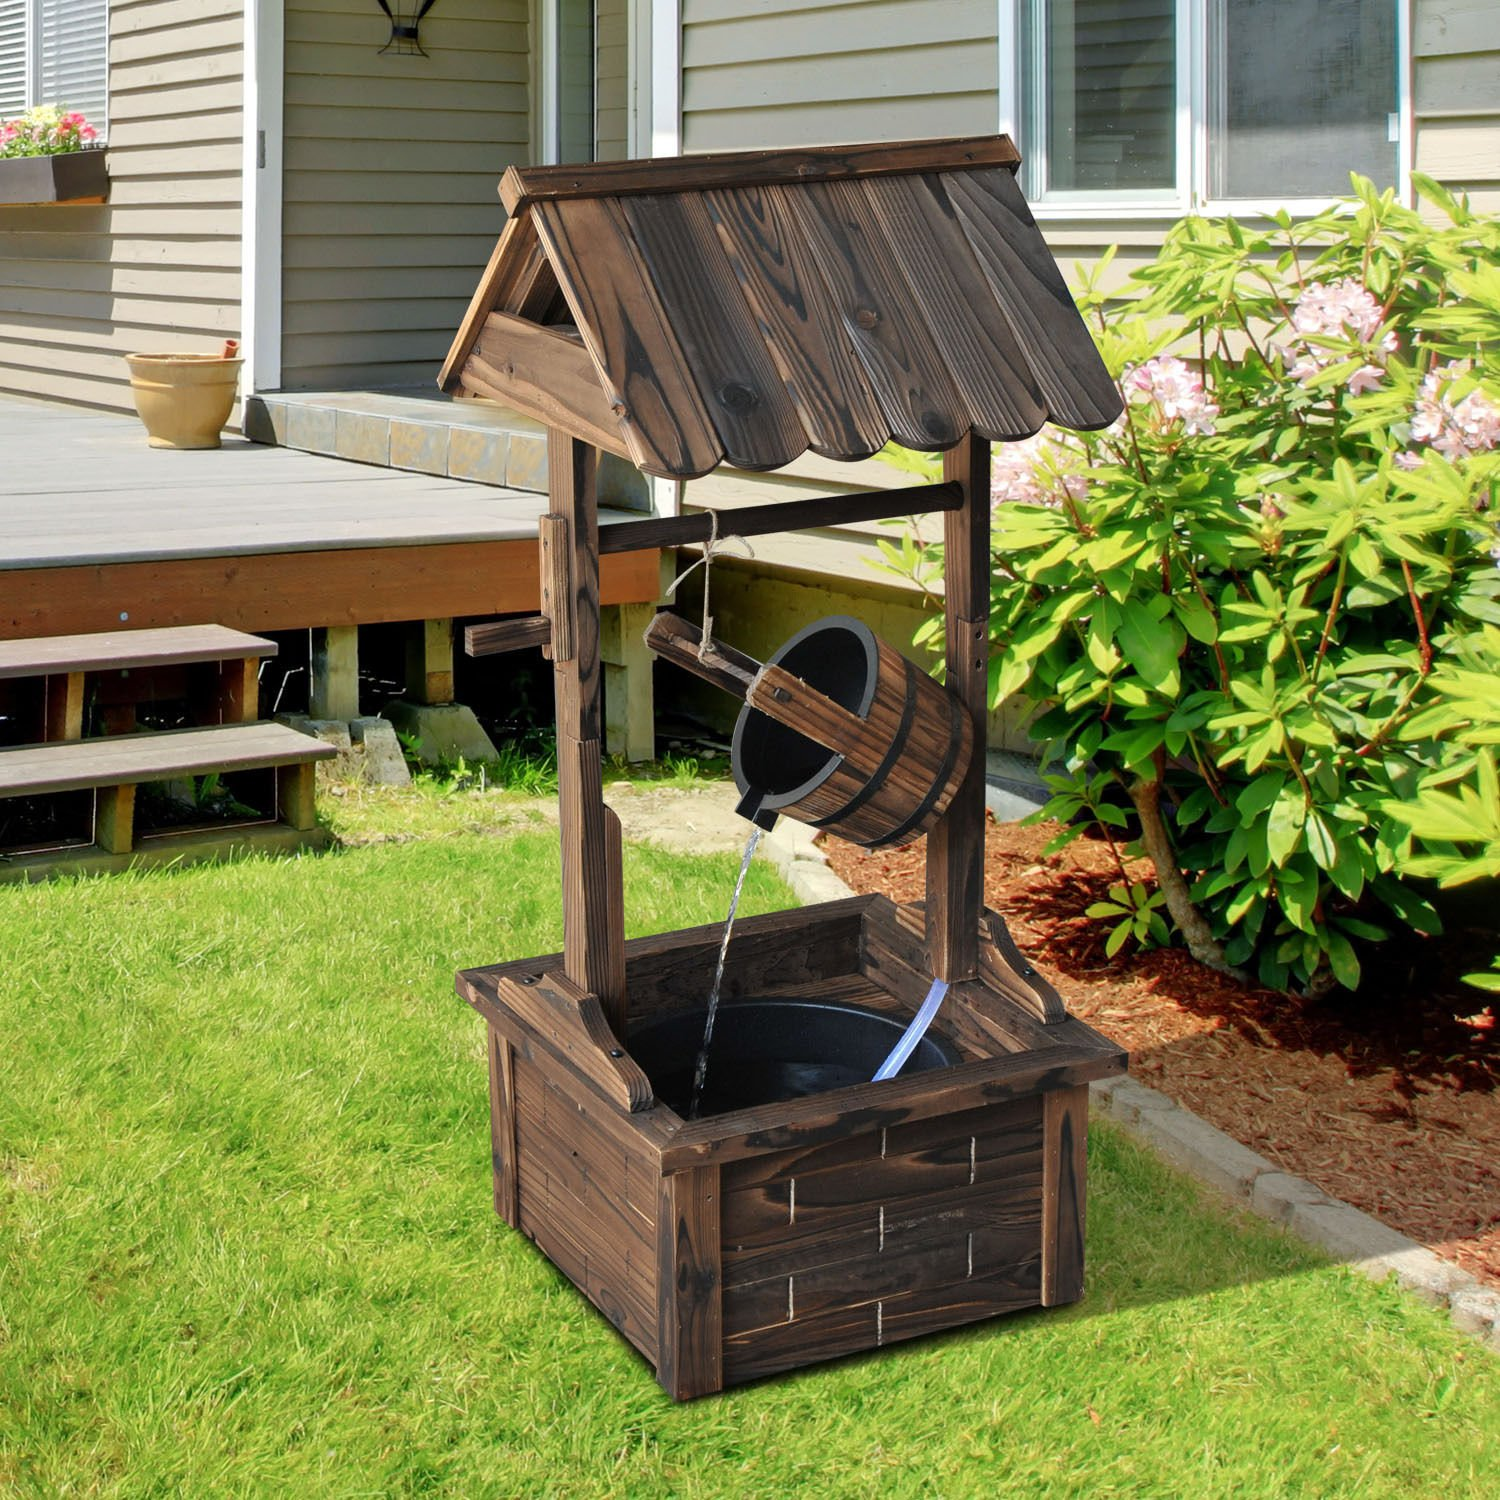 Amazon.com : Outsunny Accent Rustic Wishing Well Fountain : Garden ...